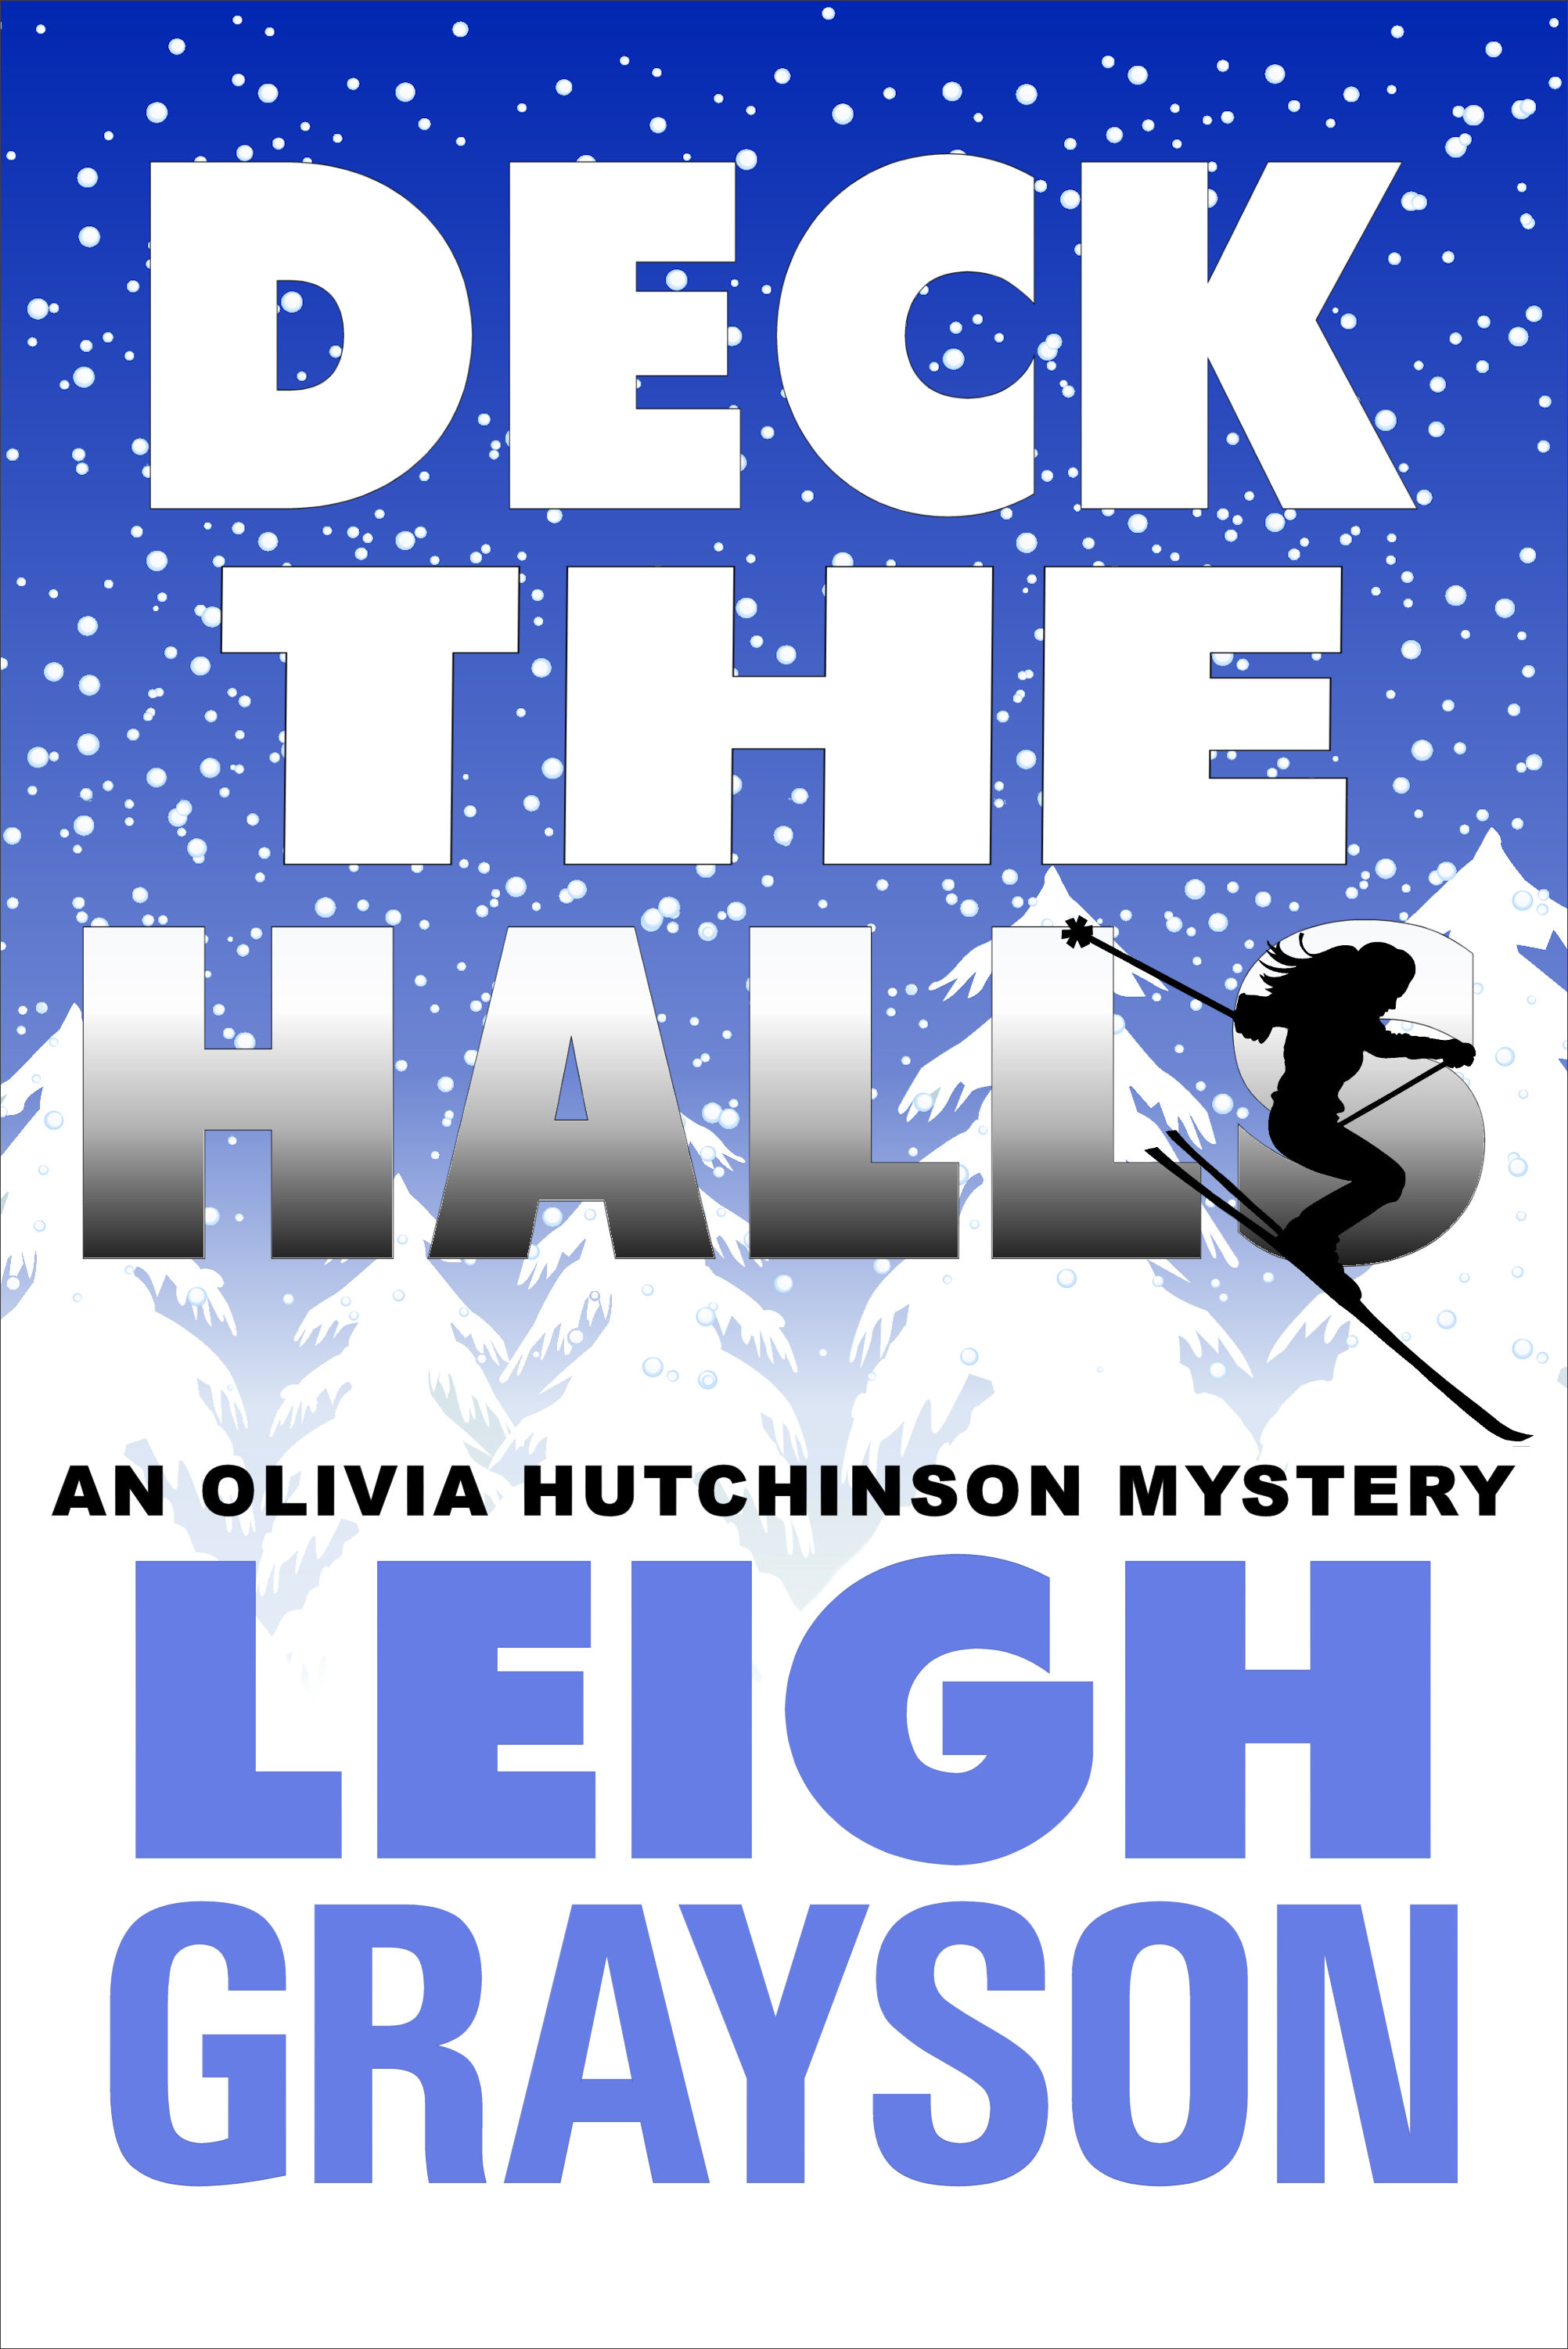 Deck the Halls (An Olivia Hutchinson Mystery, Episode 3) By: Leigh Grayson